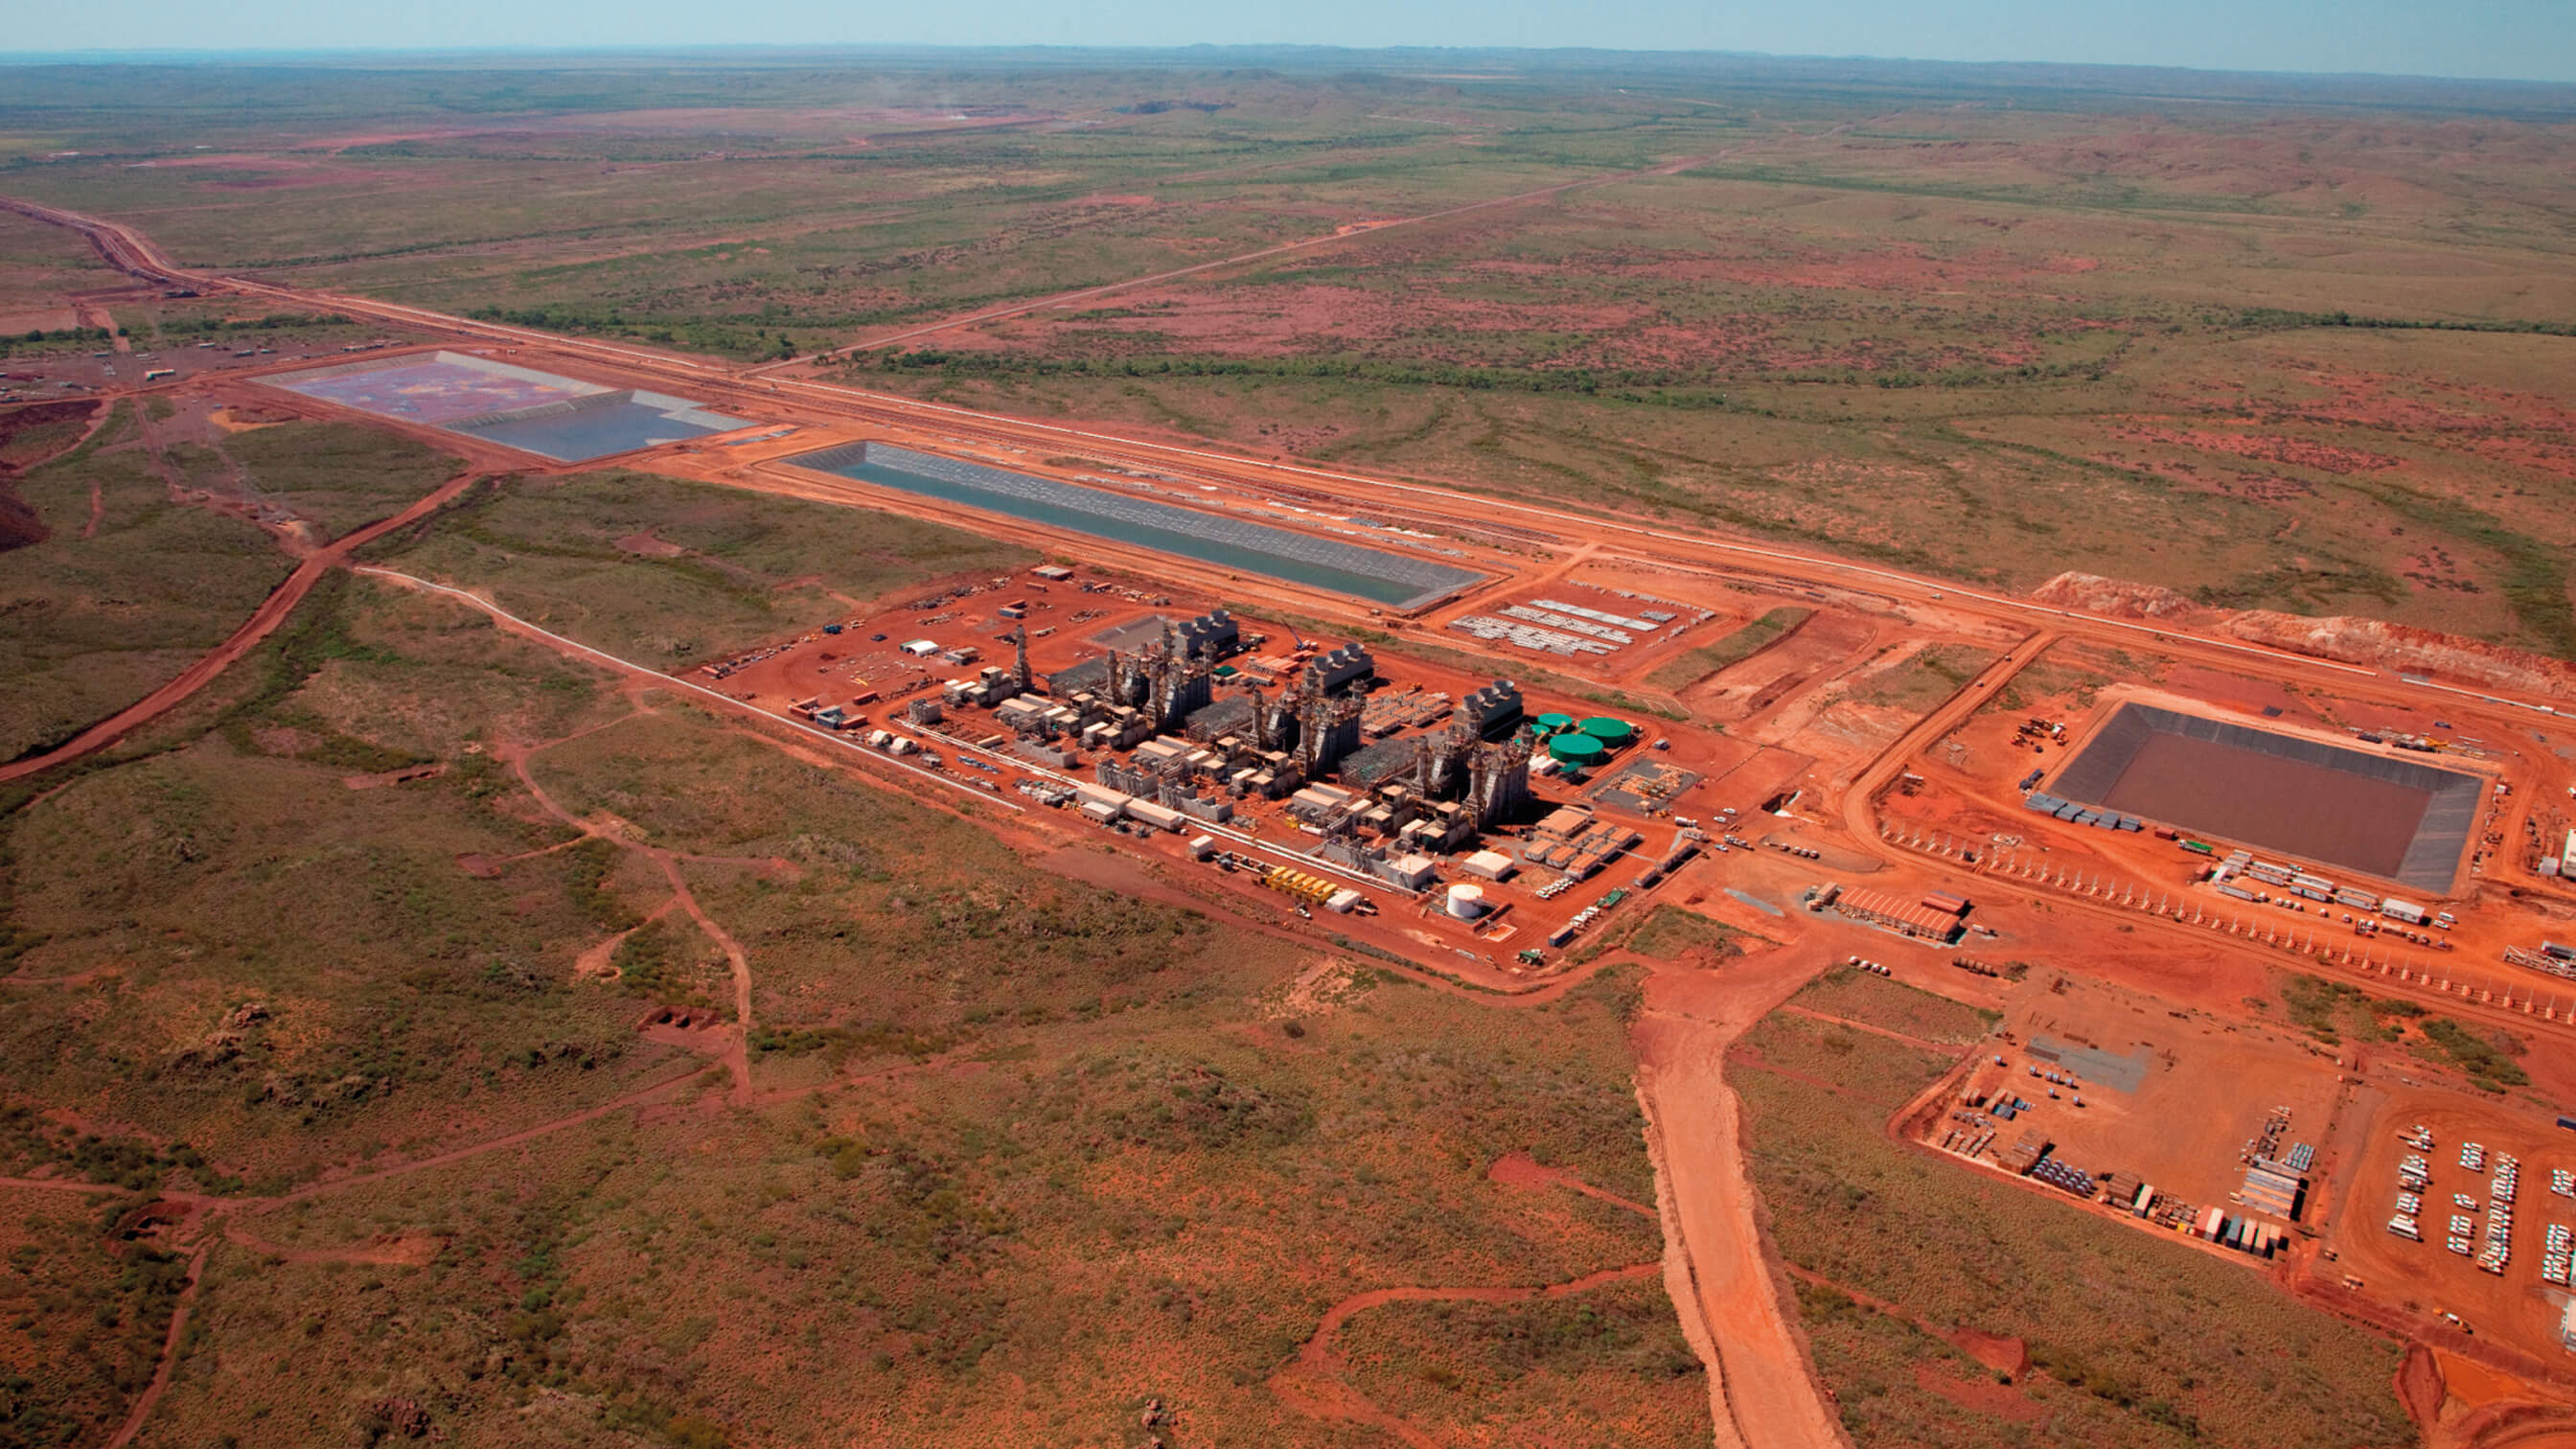 Iron ore mine in the Australian outback